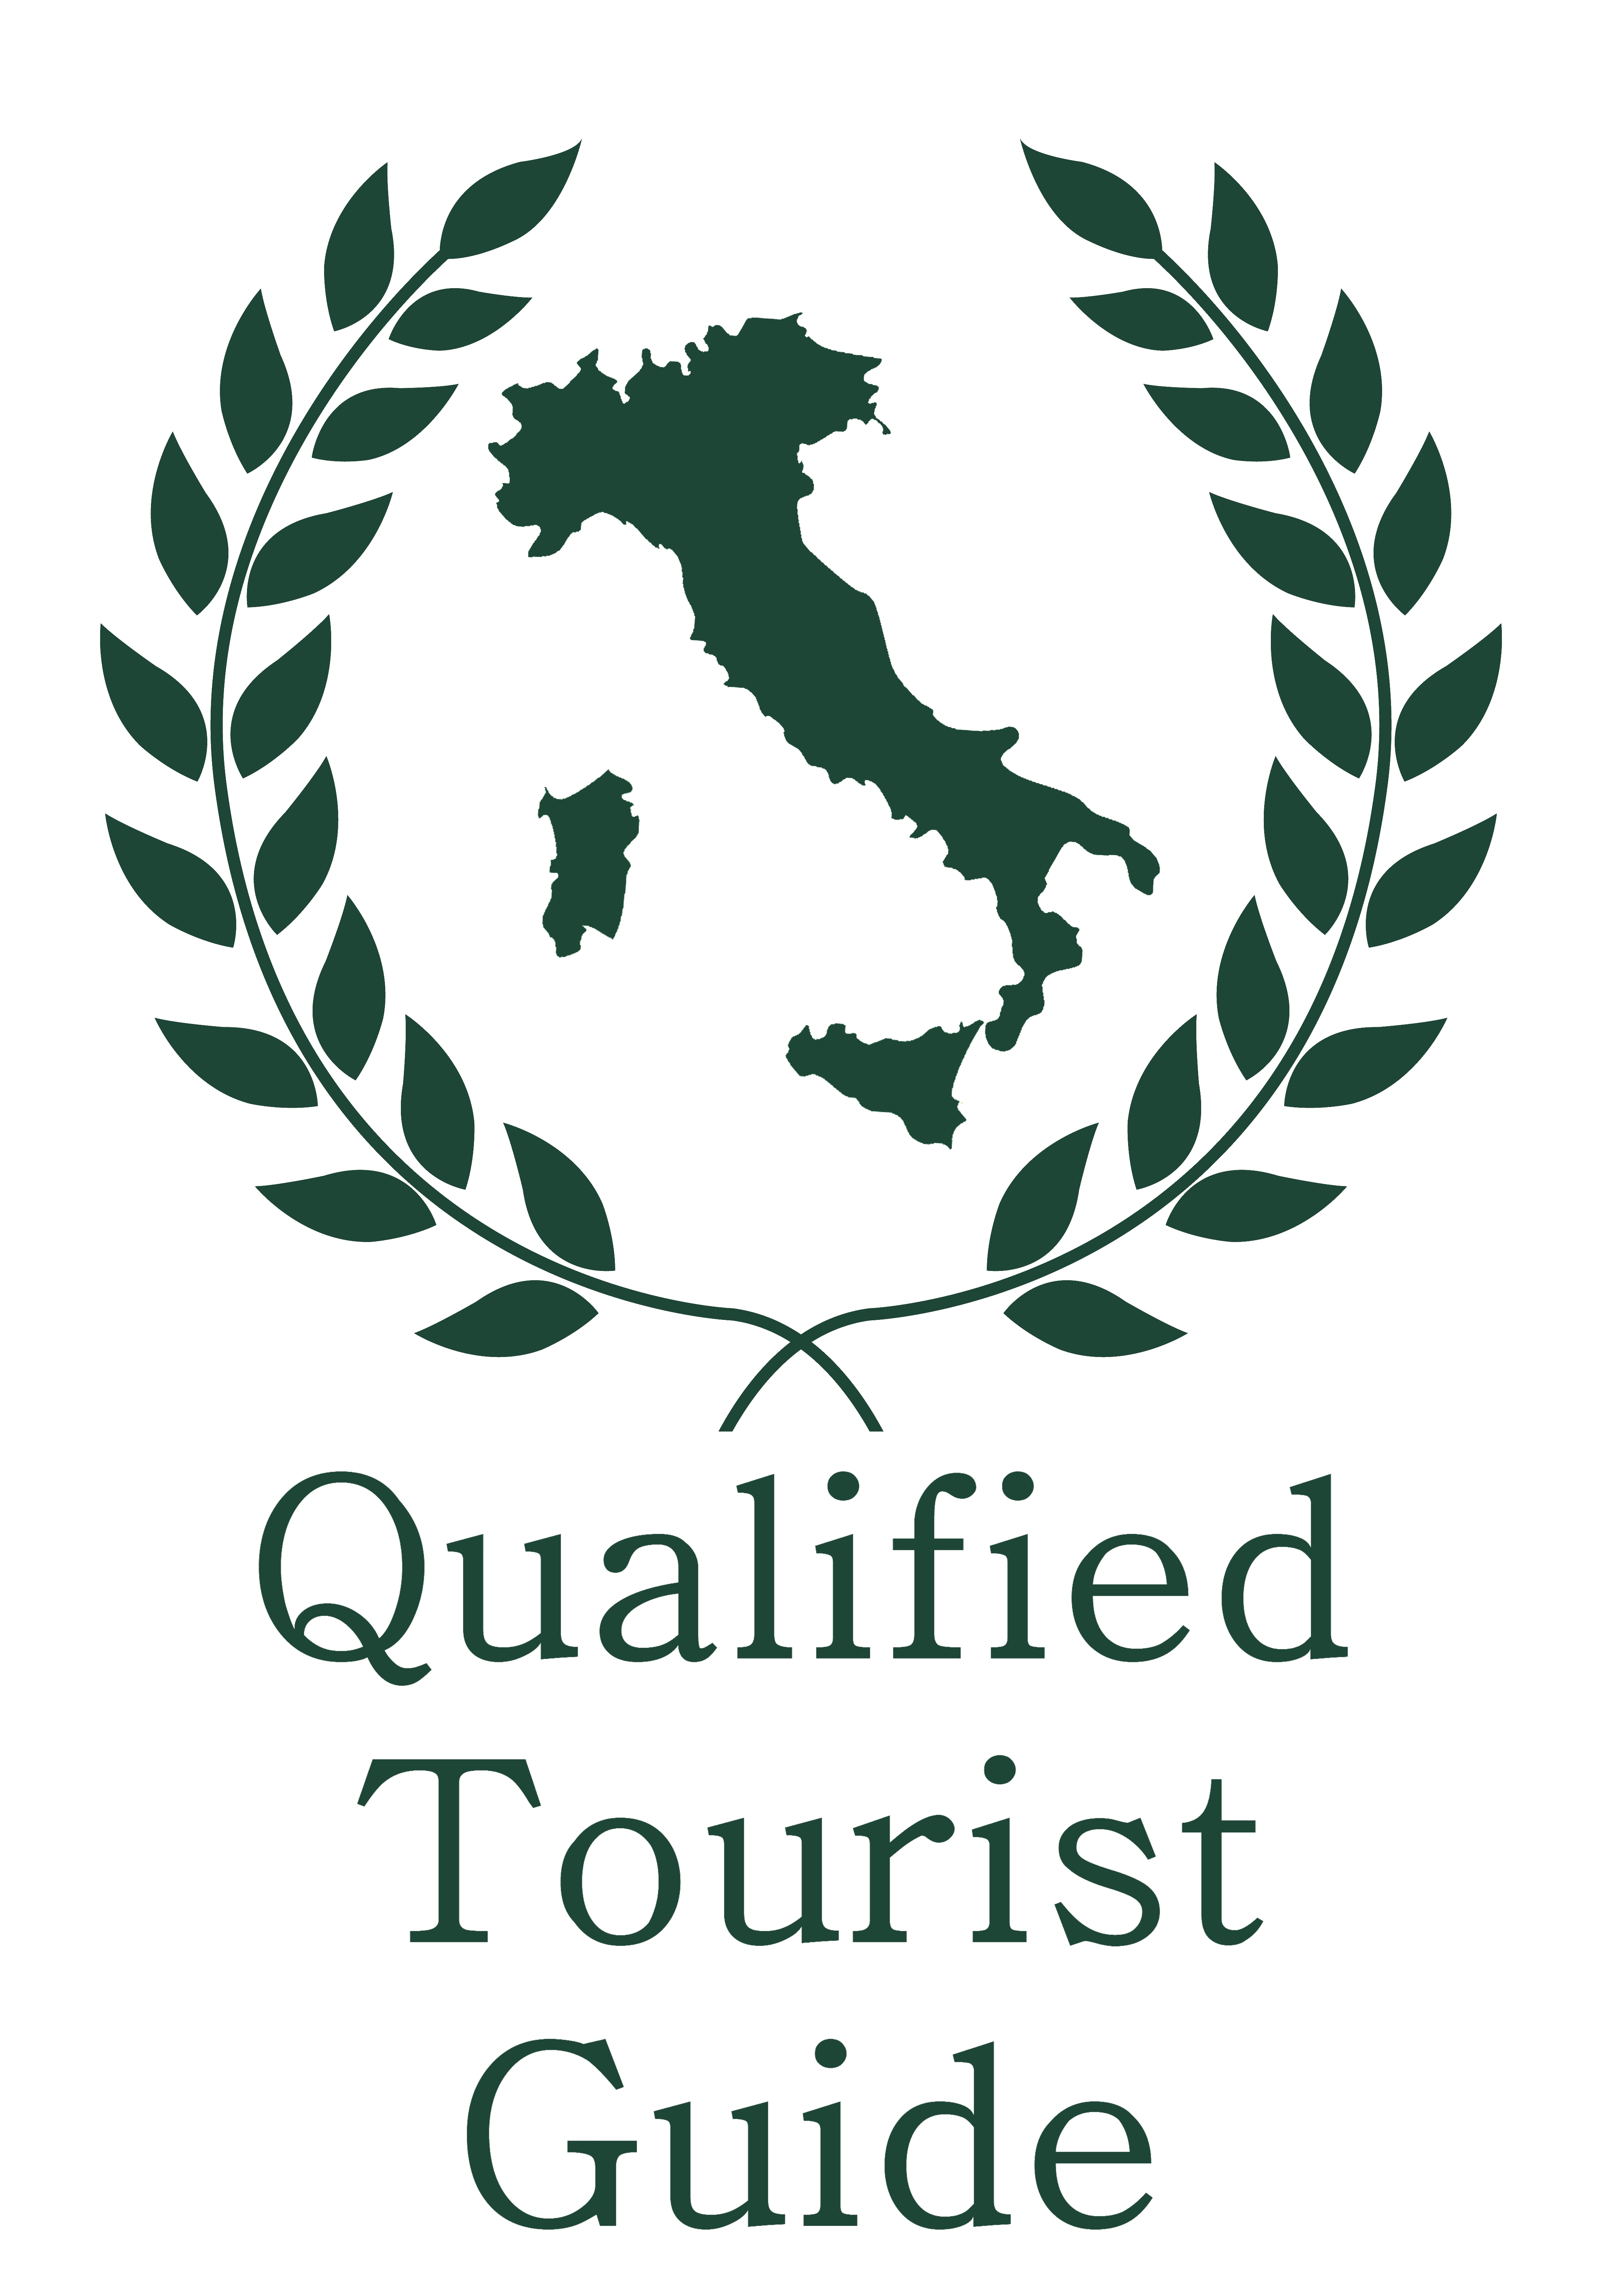 logo qualified tourist guide novembre 2013 714x1024